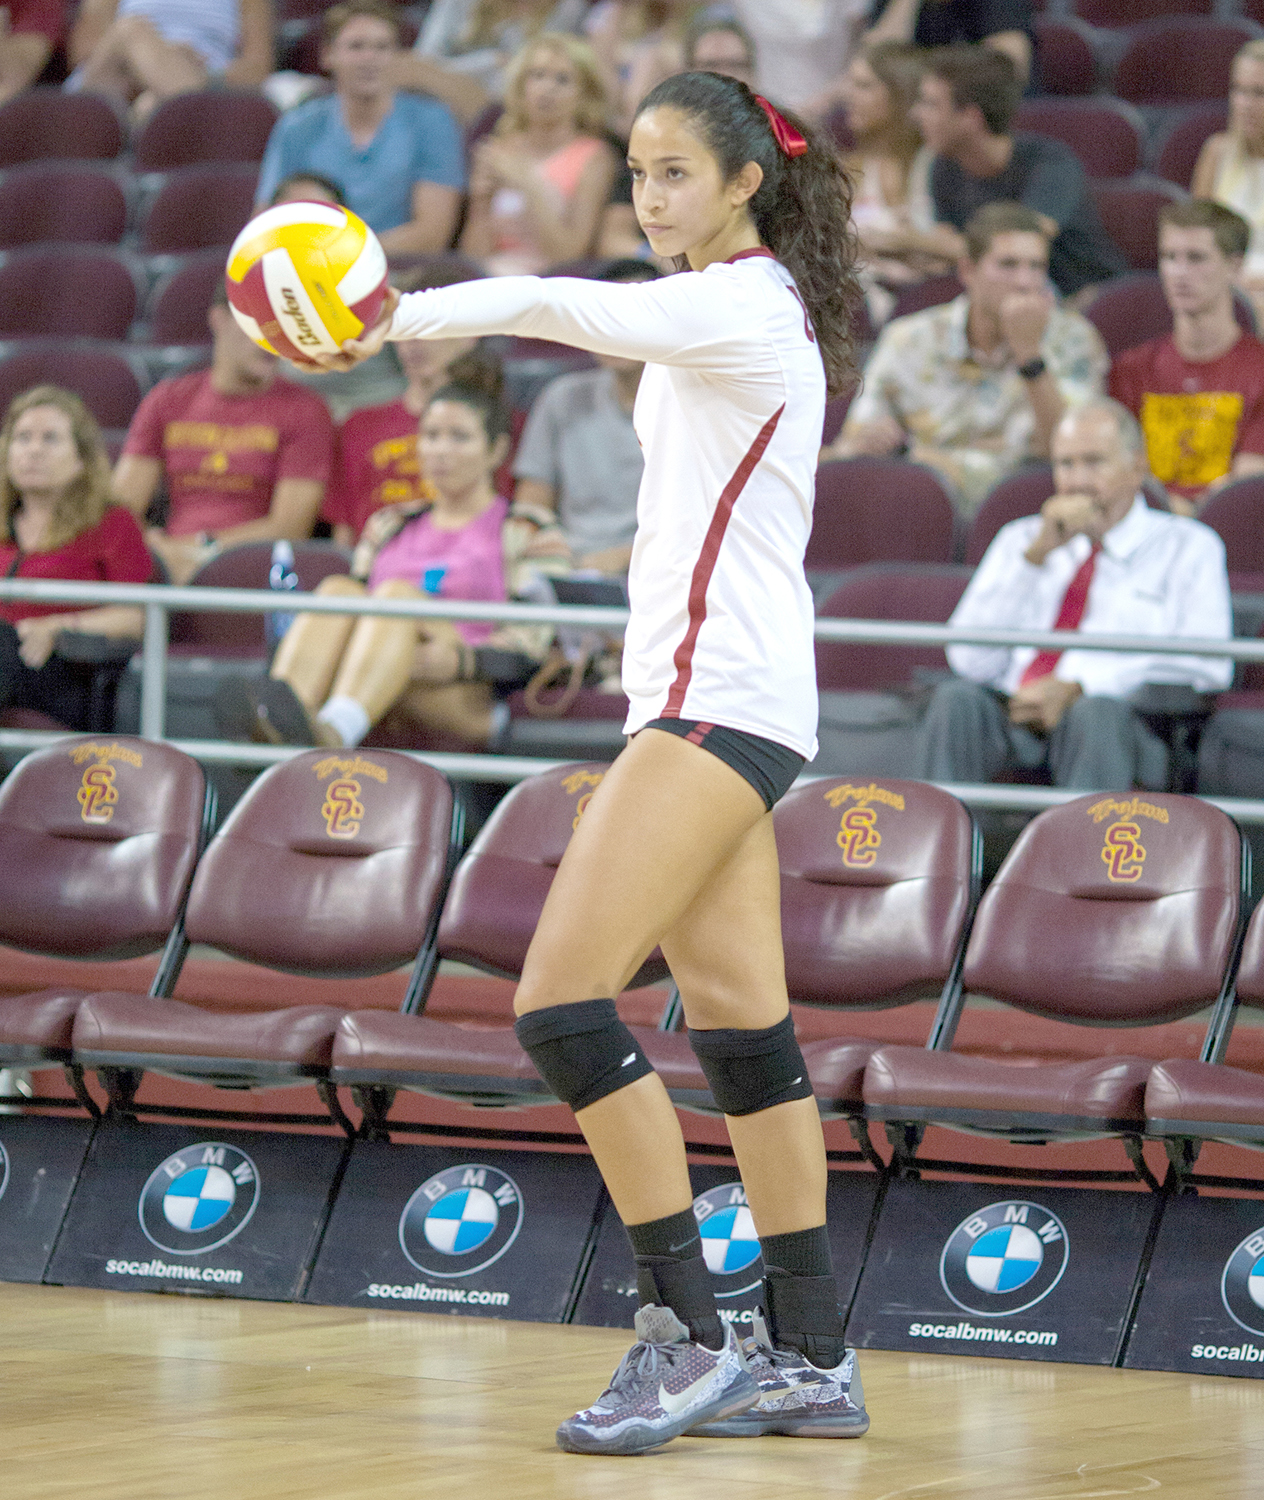 Easy, breezy Bricio · Senior outside hitter Samantha Bricio led the Women of Troy with 24 kills and 18 digs in the win over North Carolina. It was her first double-double of the season, and the team went on to win the tournament. - Brian Ji | Daily Trojan